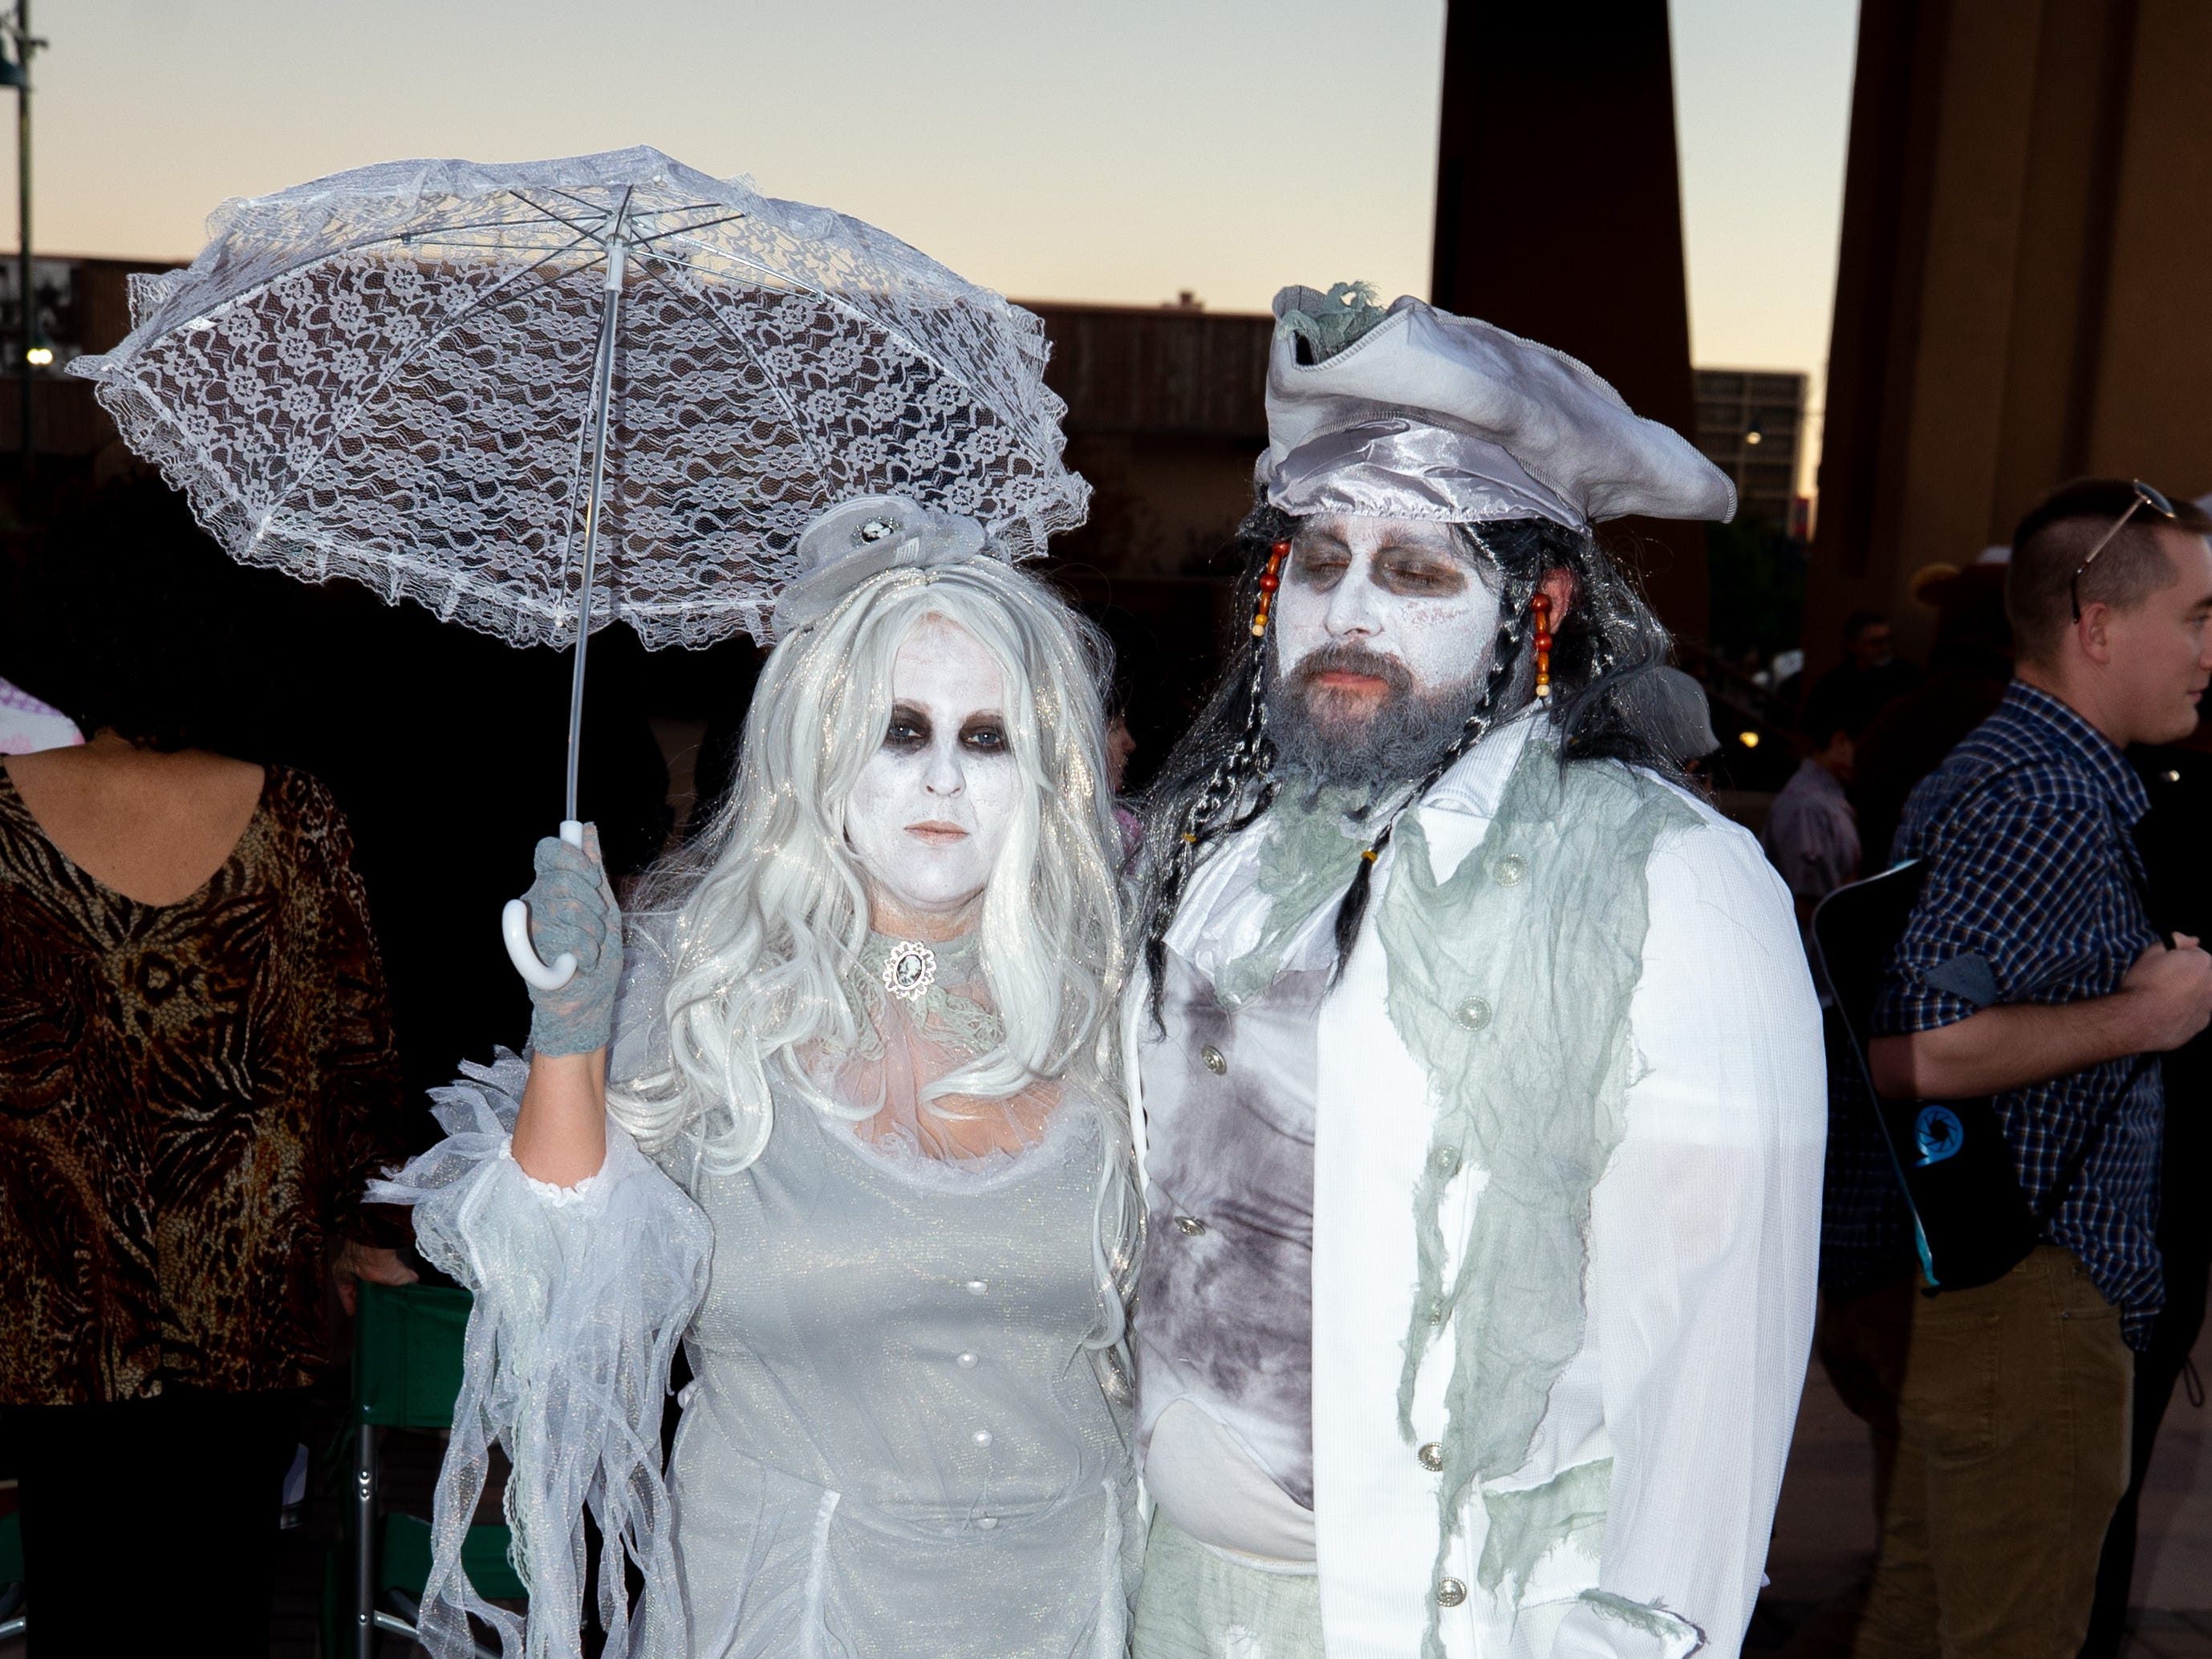 Pirate ghosts at the 2018 Zombie Walk held on Saturday, Oct. 27, 2018.